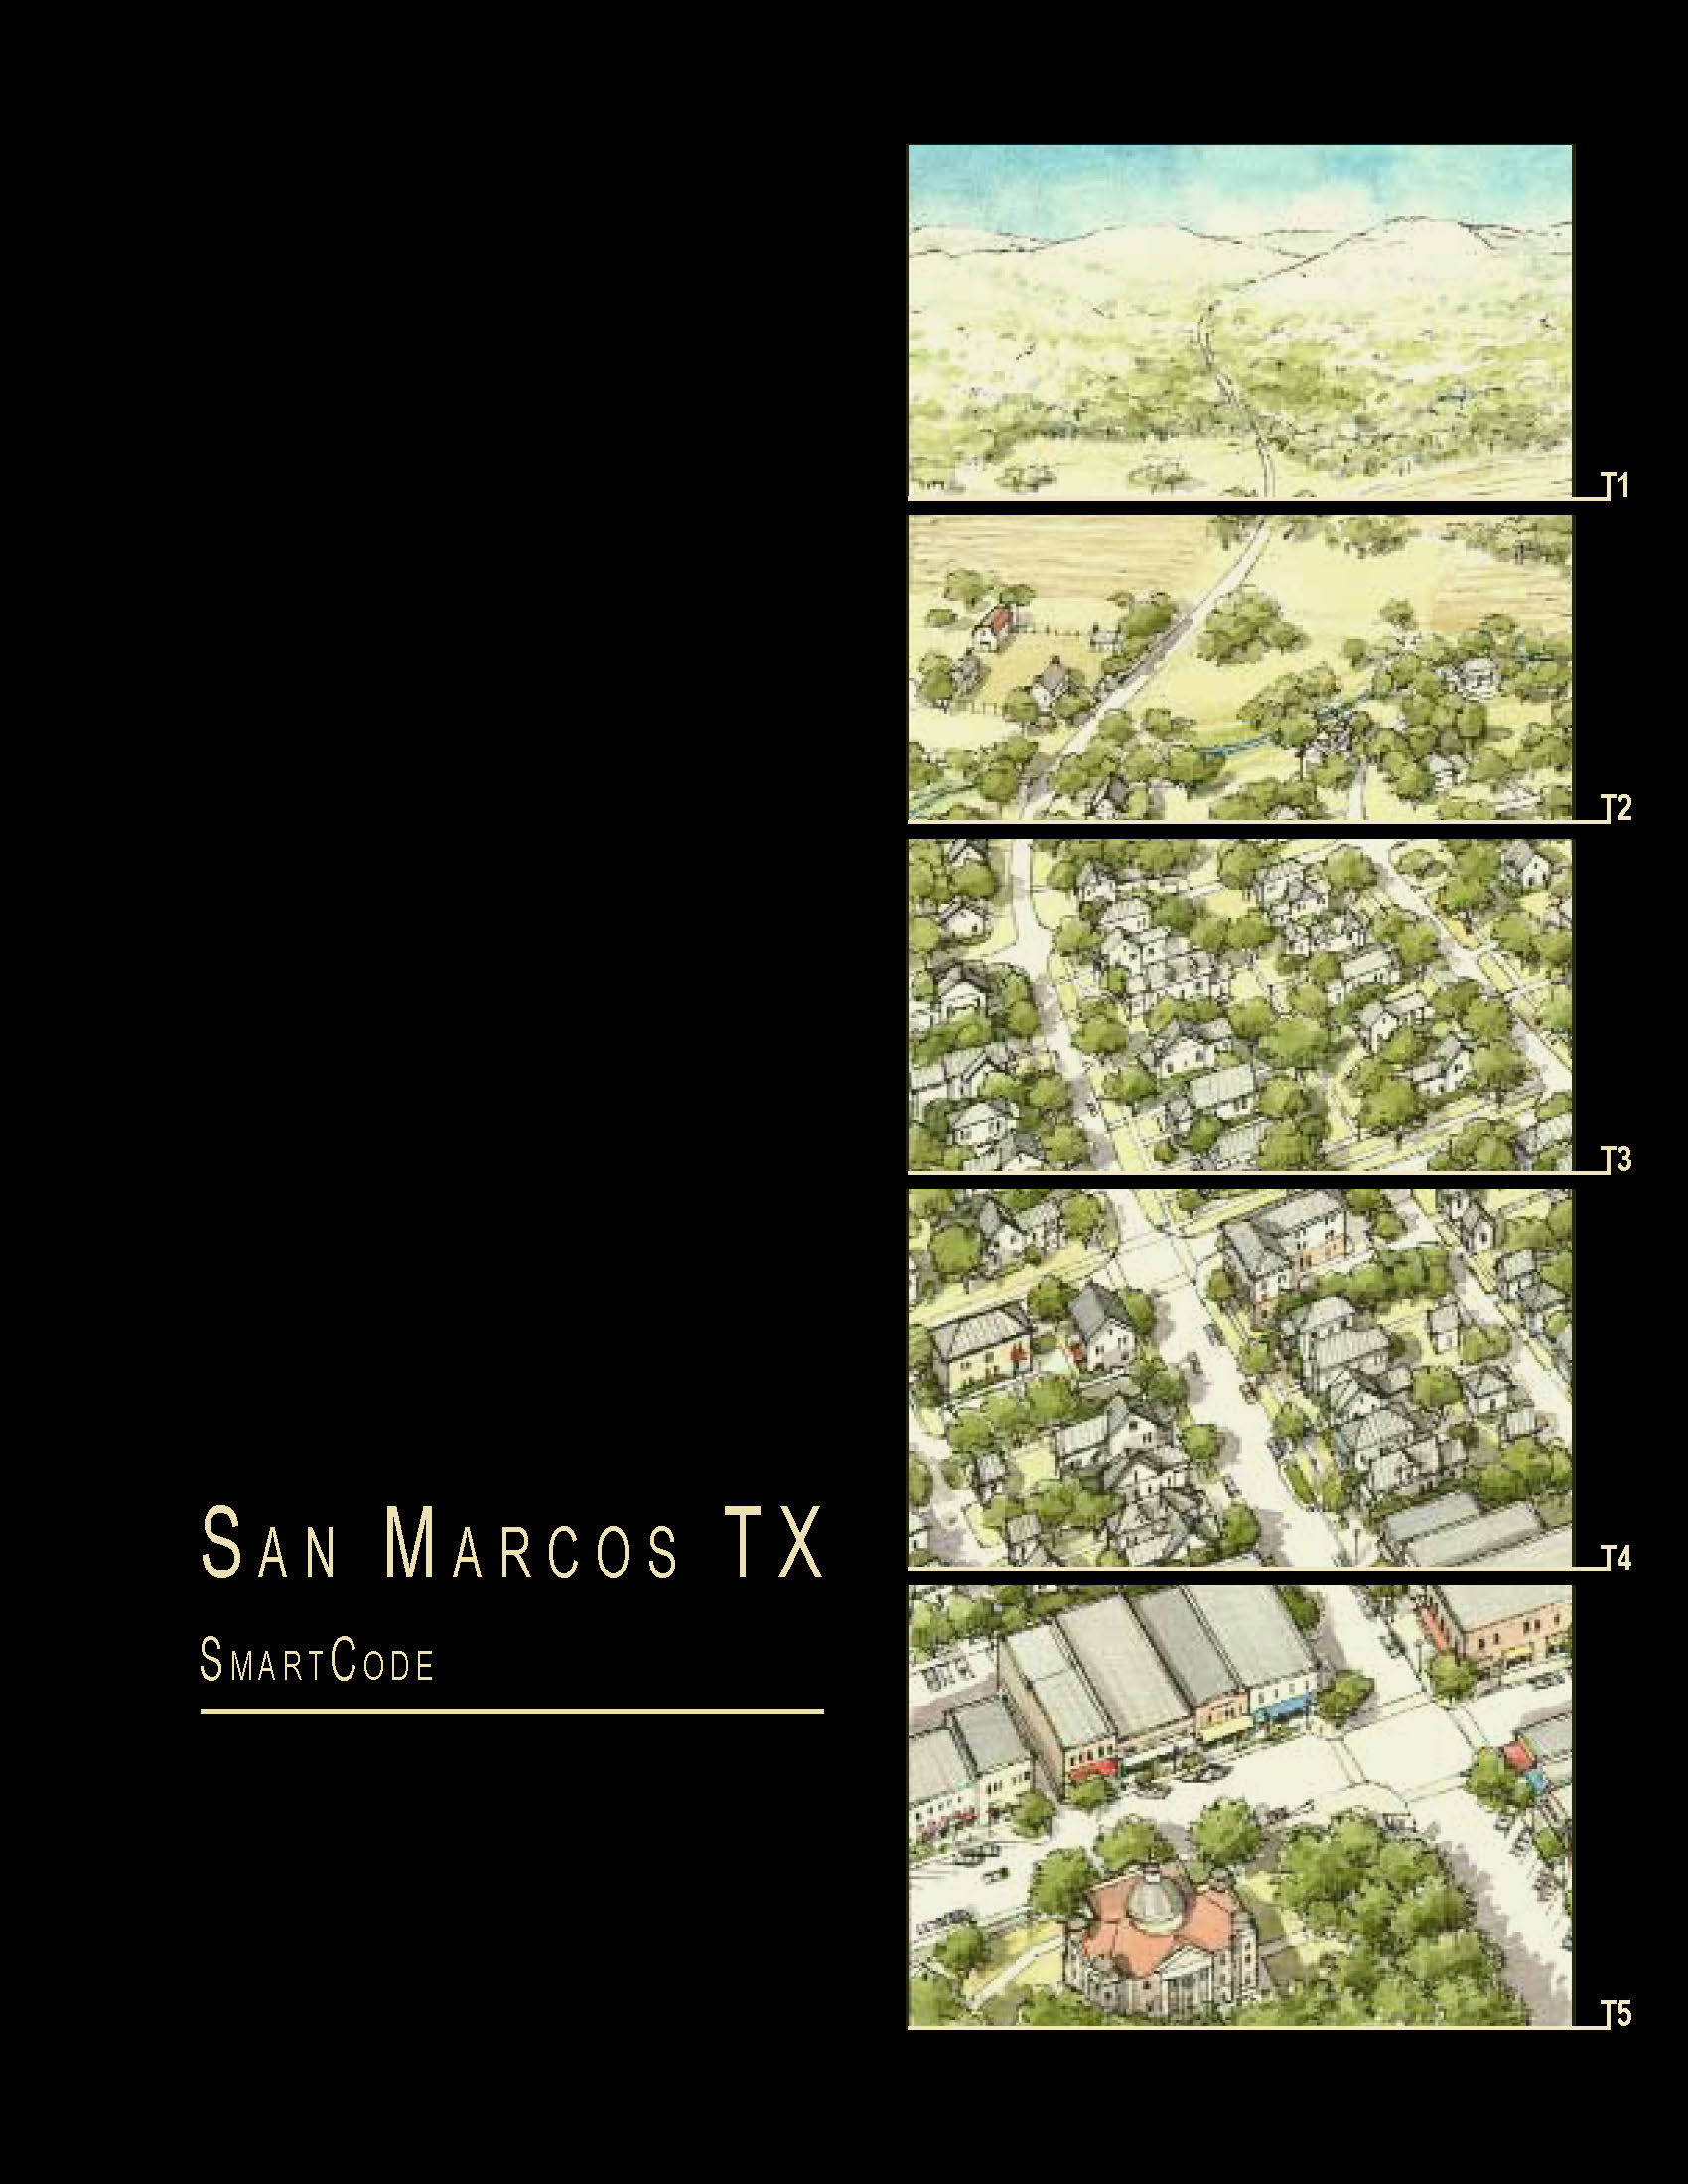 San Marcos SmartCode_Revised 3_10_2014_Page_01.jpg